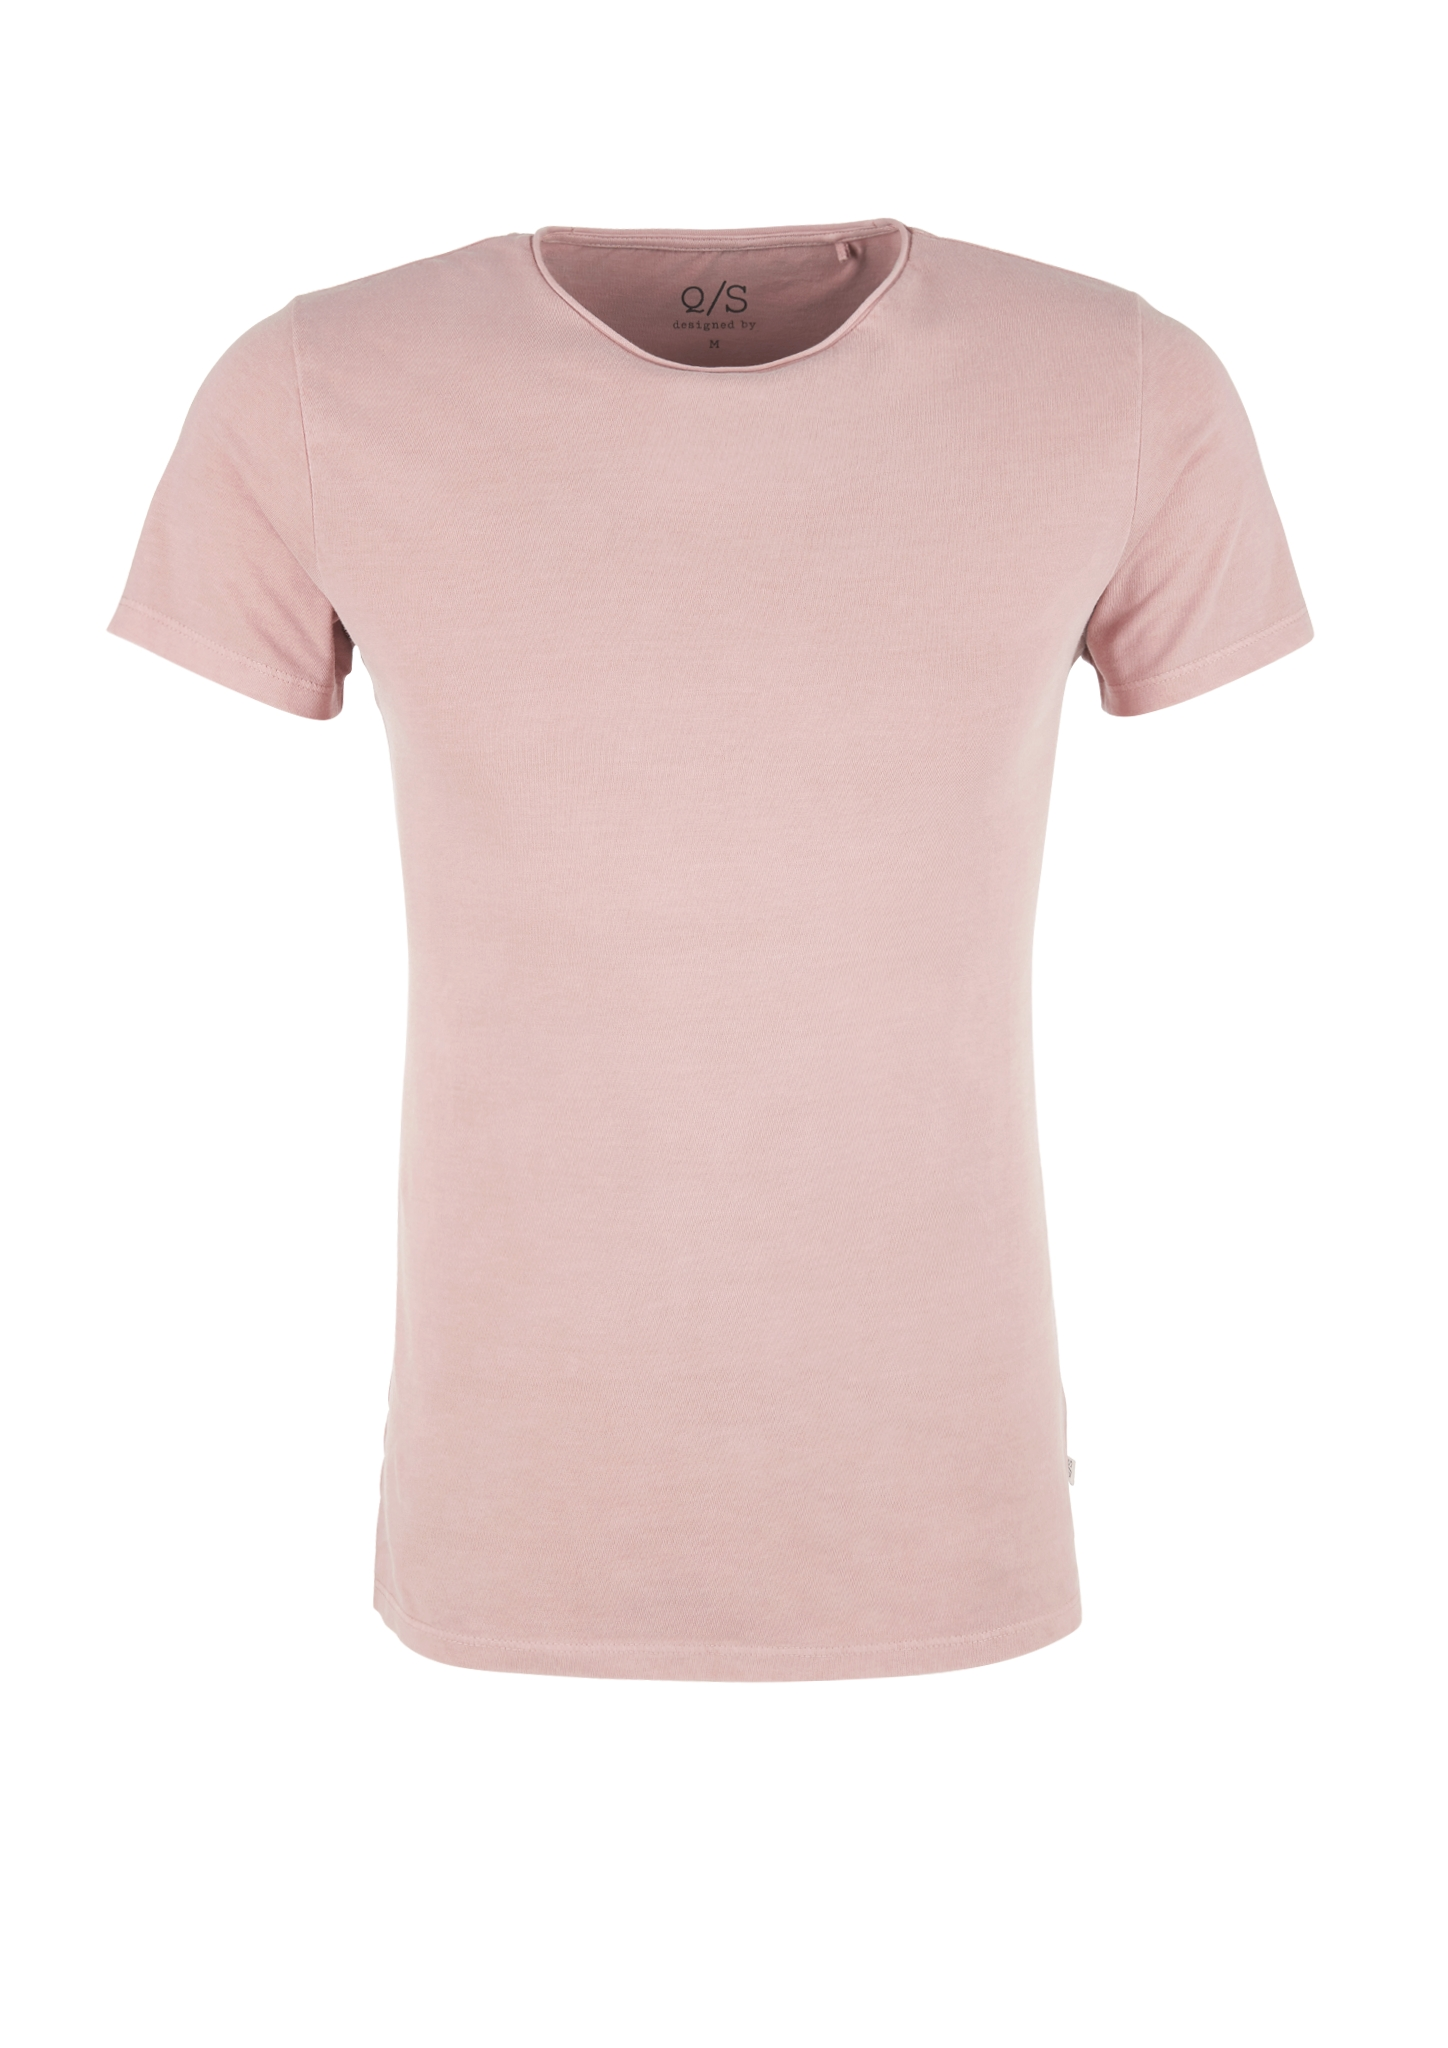 T-Shirt | Bekleidung > Shirts > Sonstige Shirts | Pink | 100% baumwolle | Q/S designed by